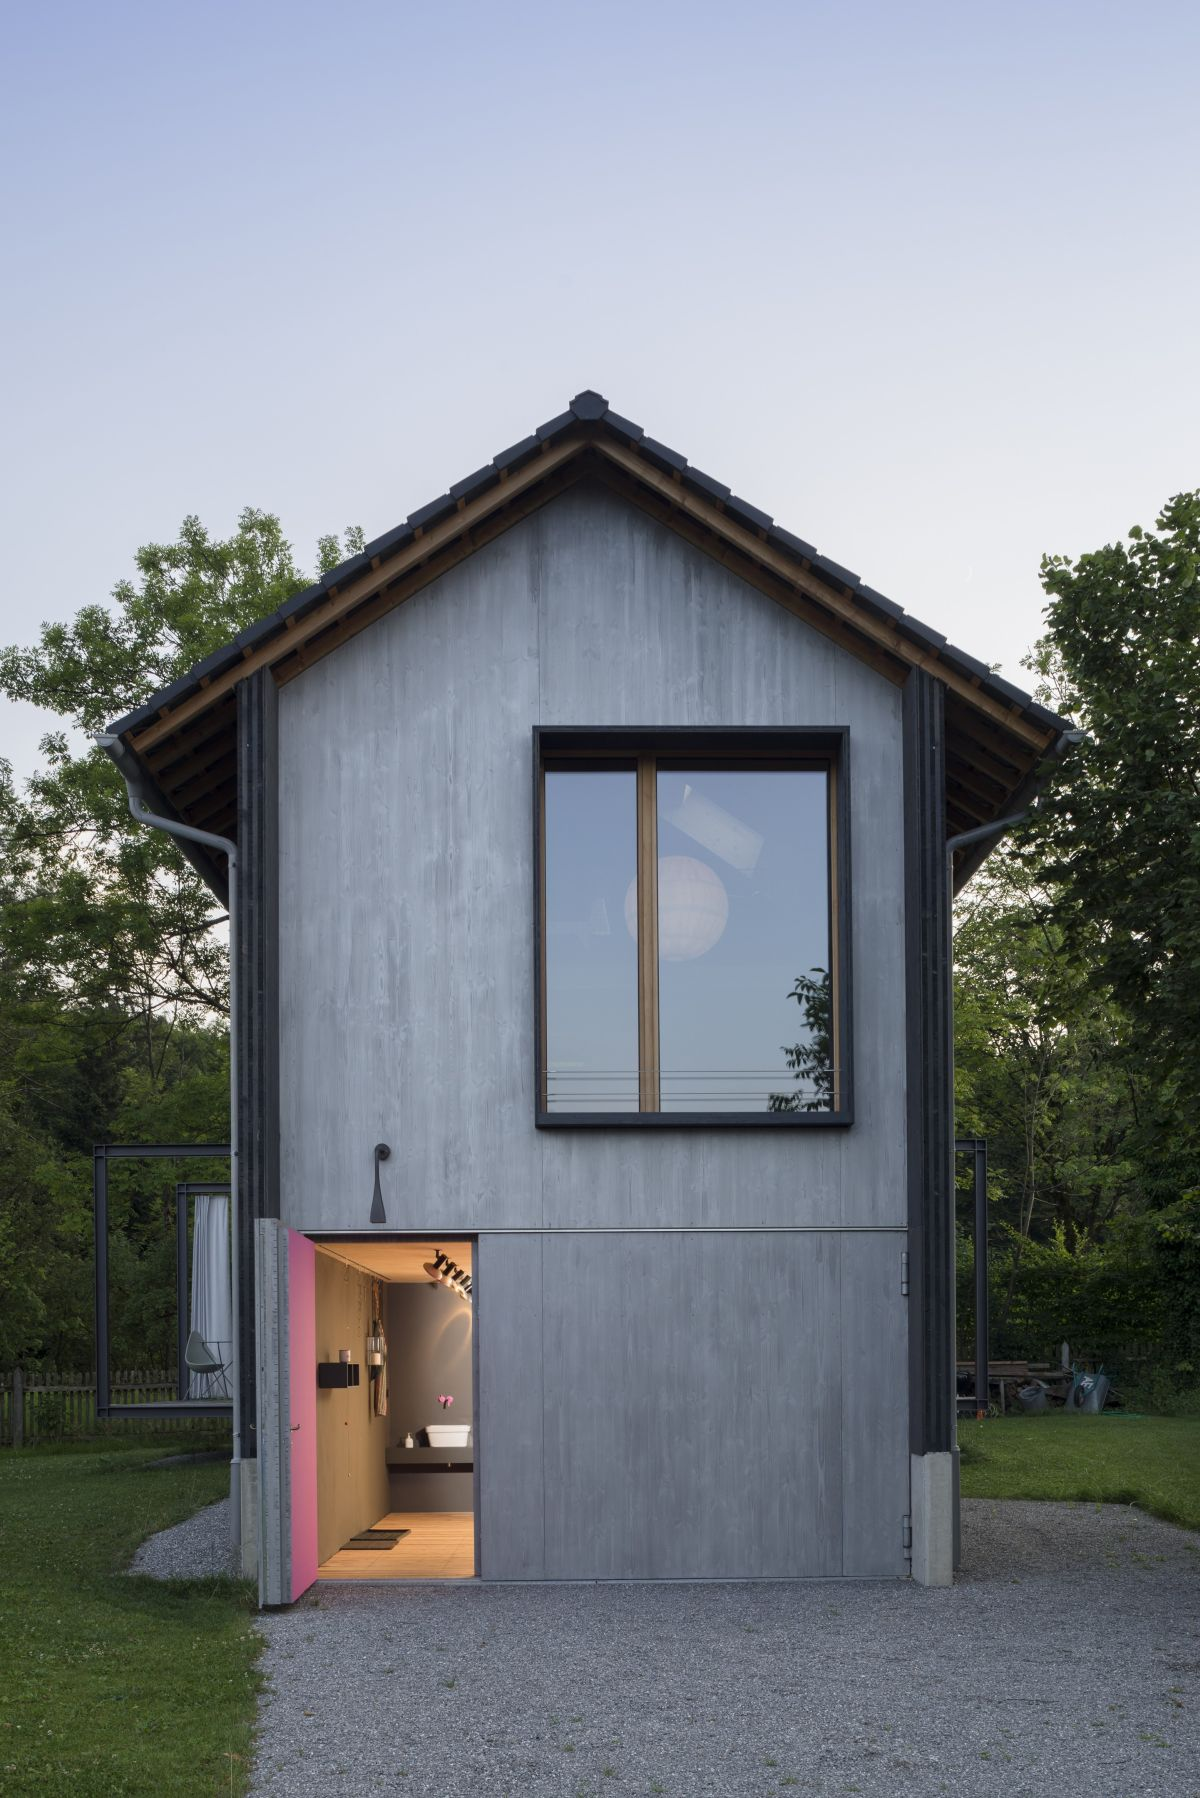 The front door is adjacent to the garage and can seamlessly blend into the facade when closed